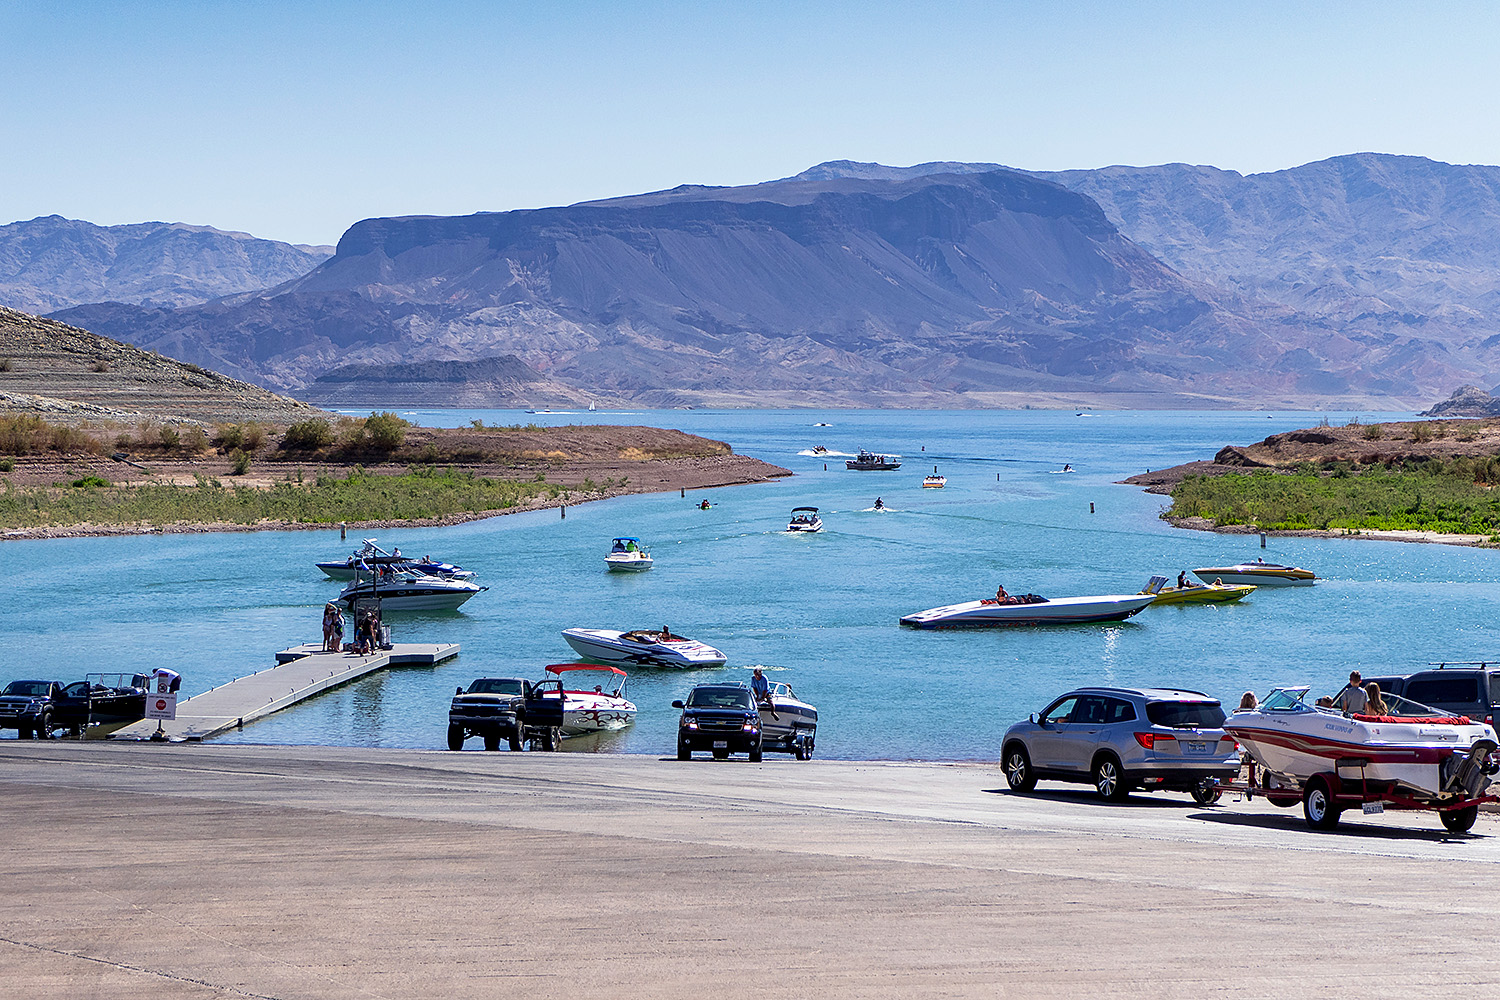 7.5 Million People Visited Lake Mead National Recreation Area in ...